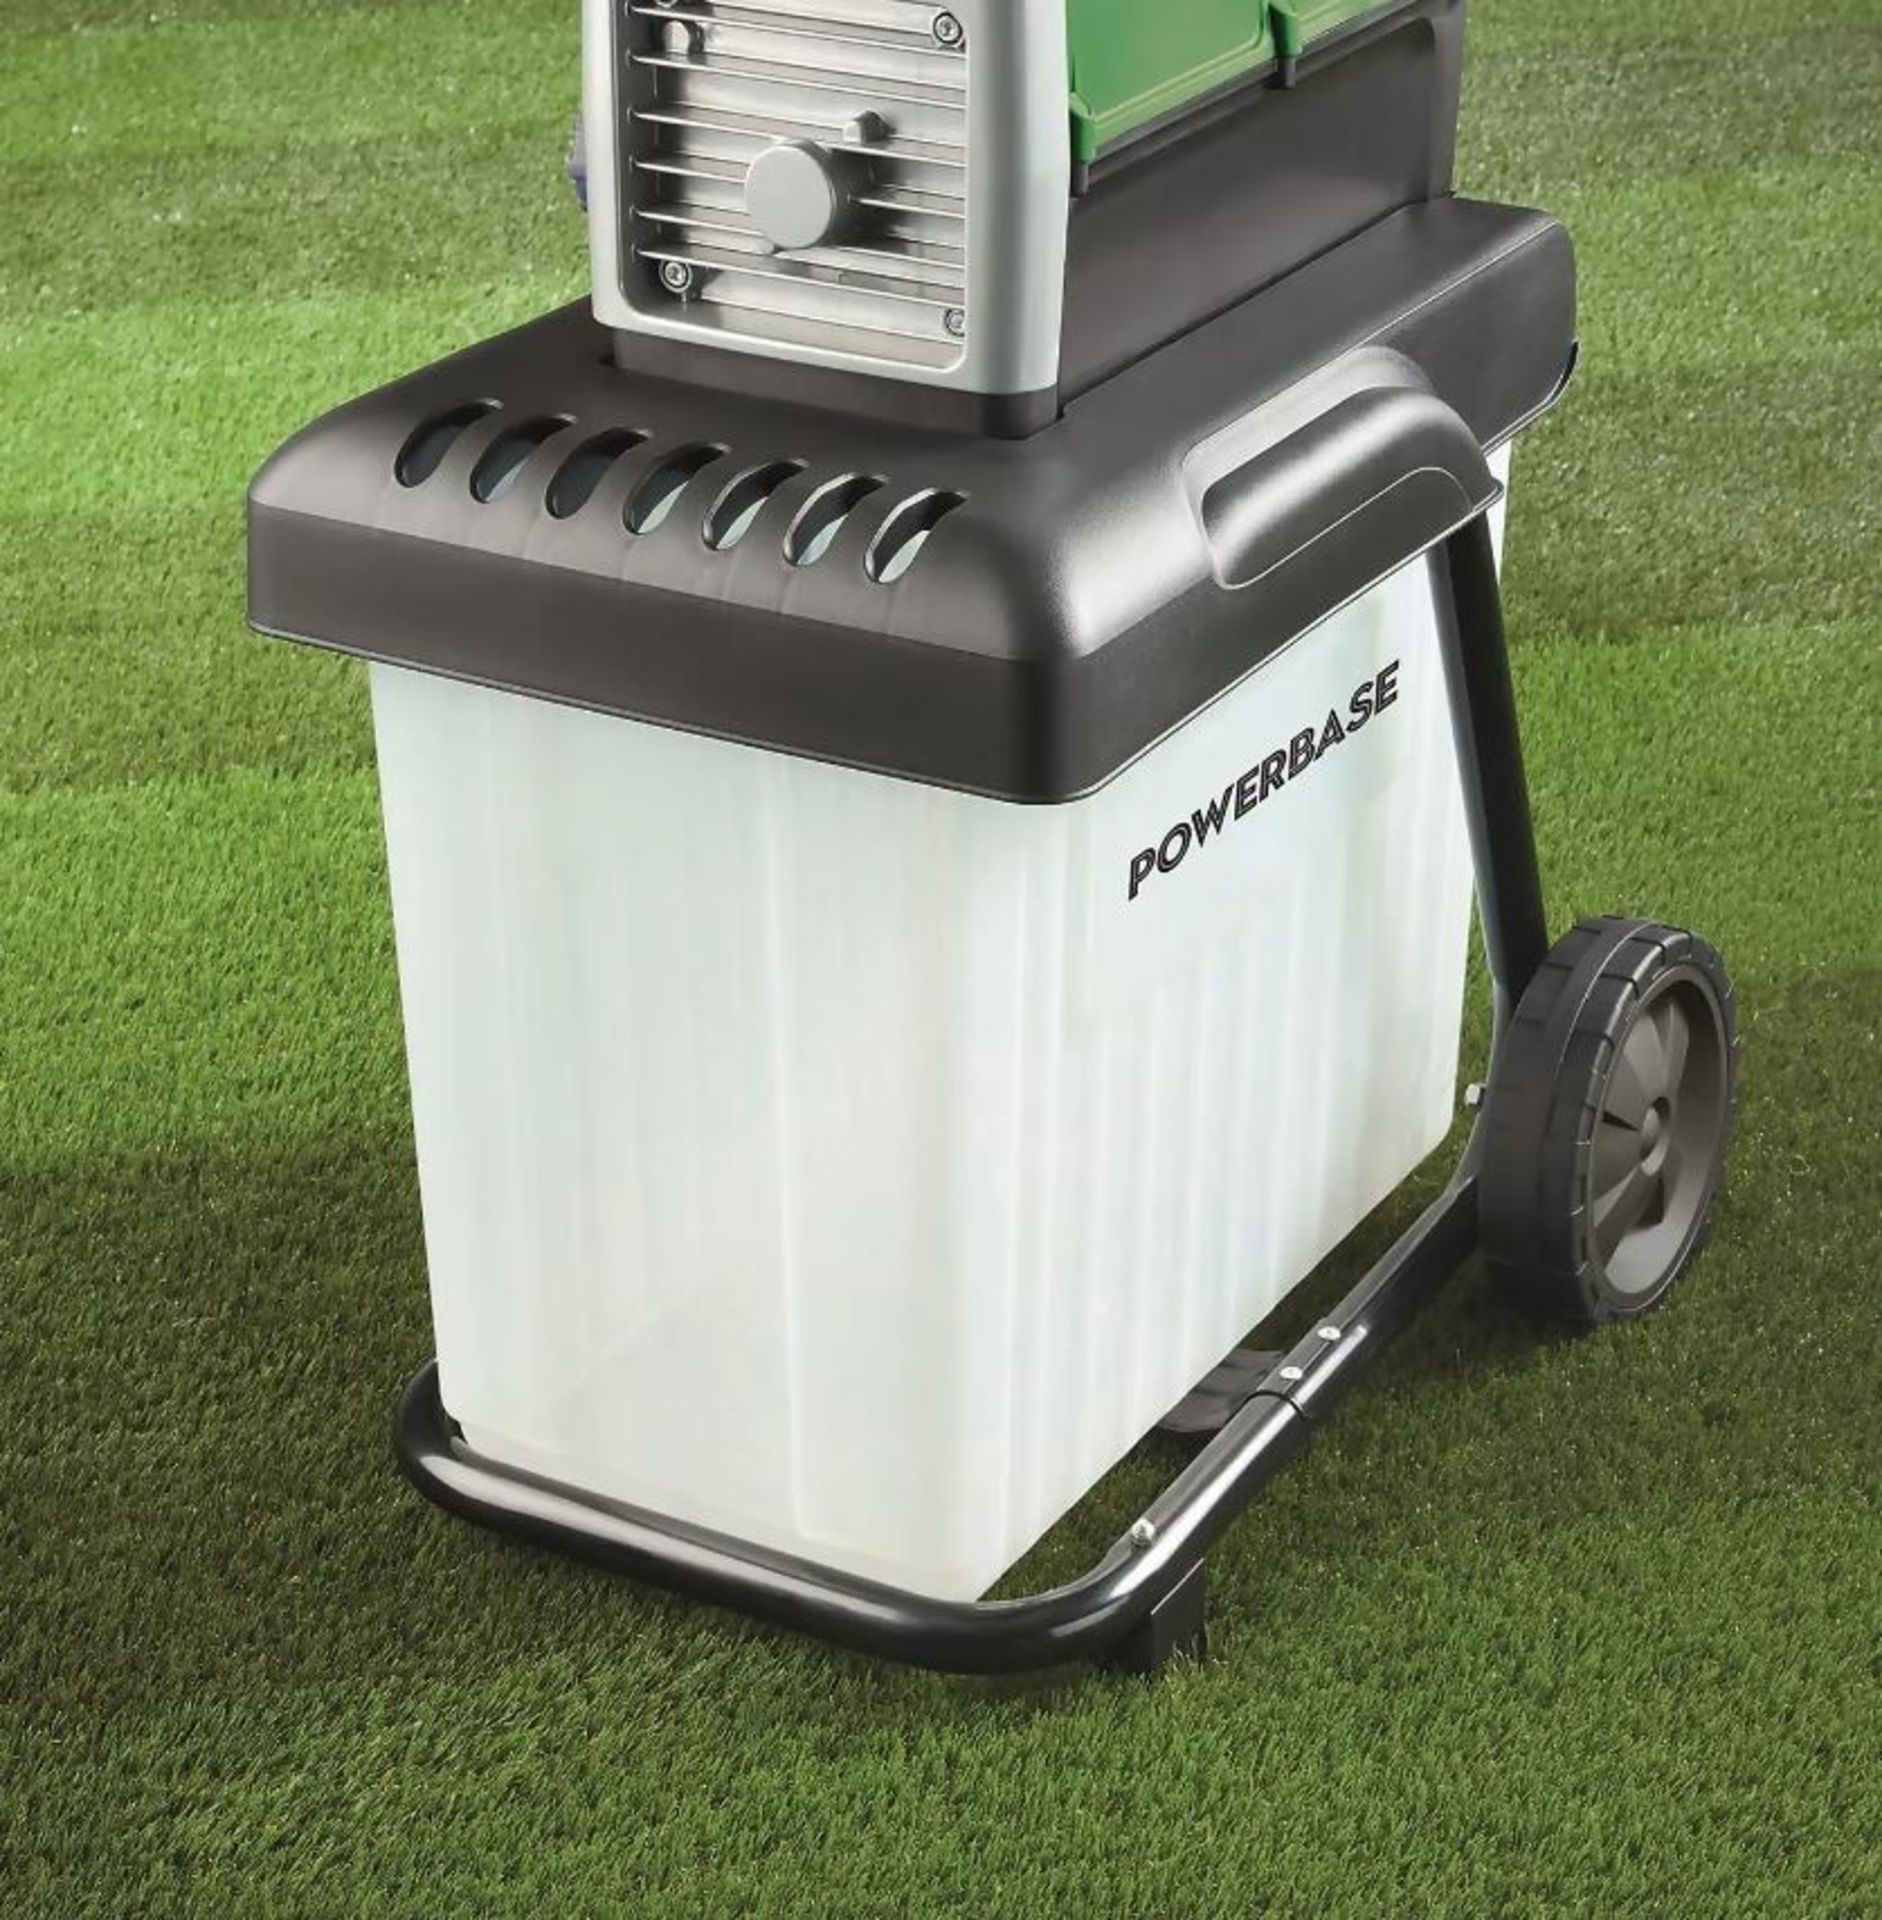 (P3) 1x Powerbase 42cm 2800W Electric Silent Shredder. RRP £175.00. Unit Appears Clean, Unused With - Image 2 of 5